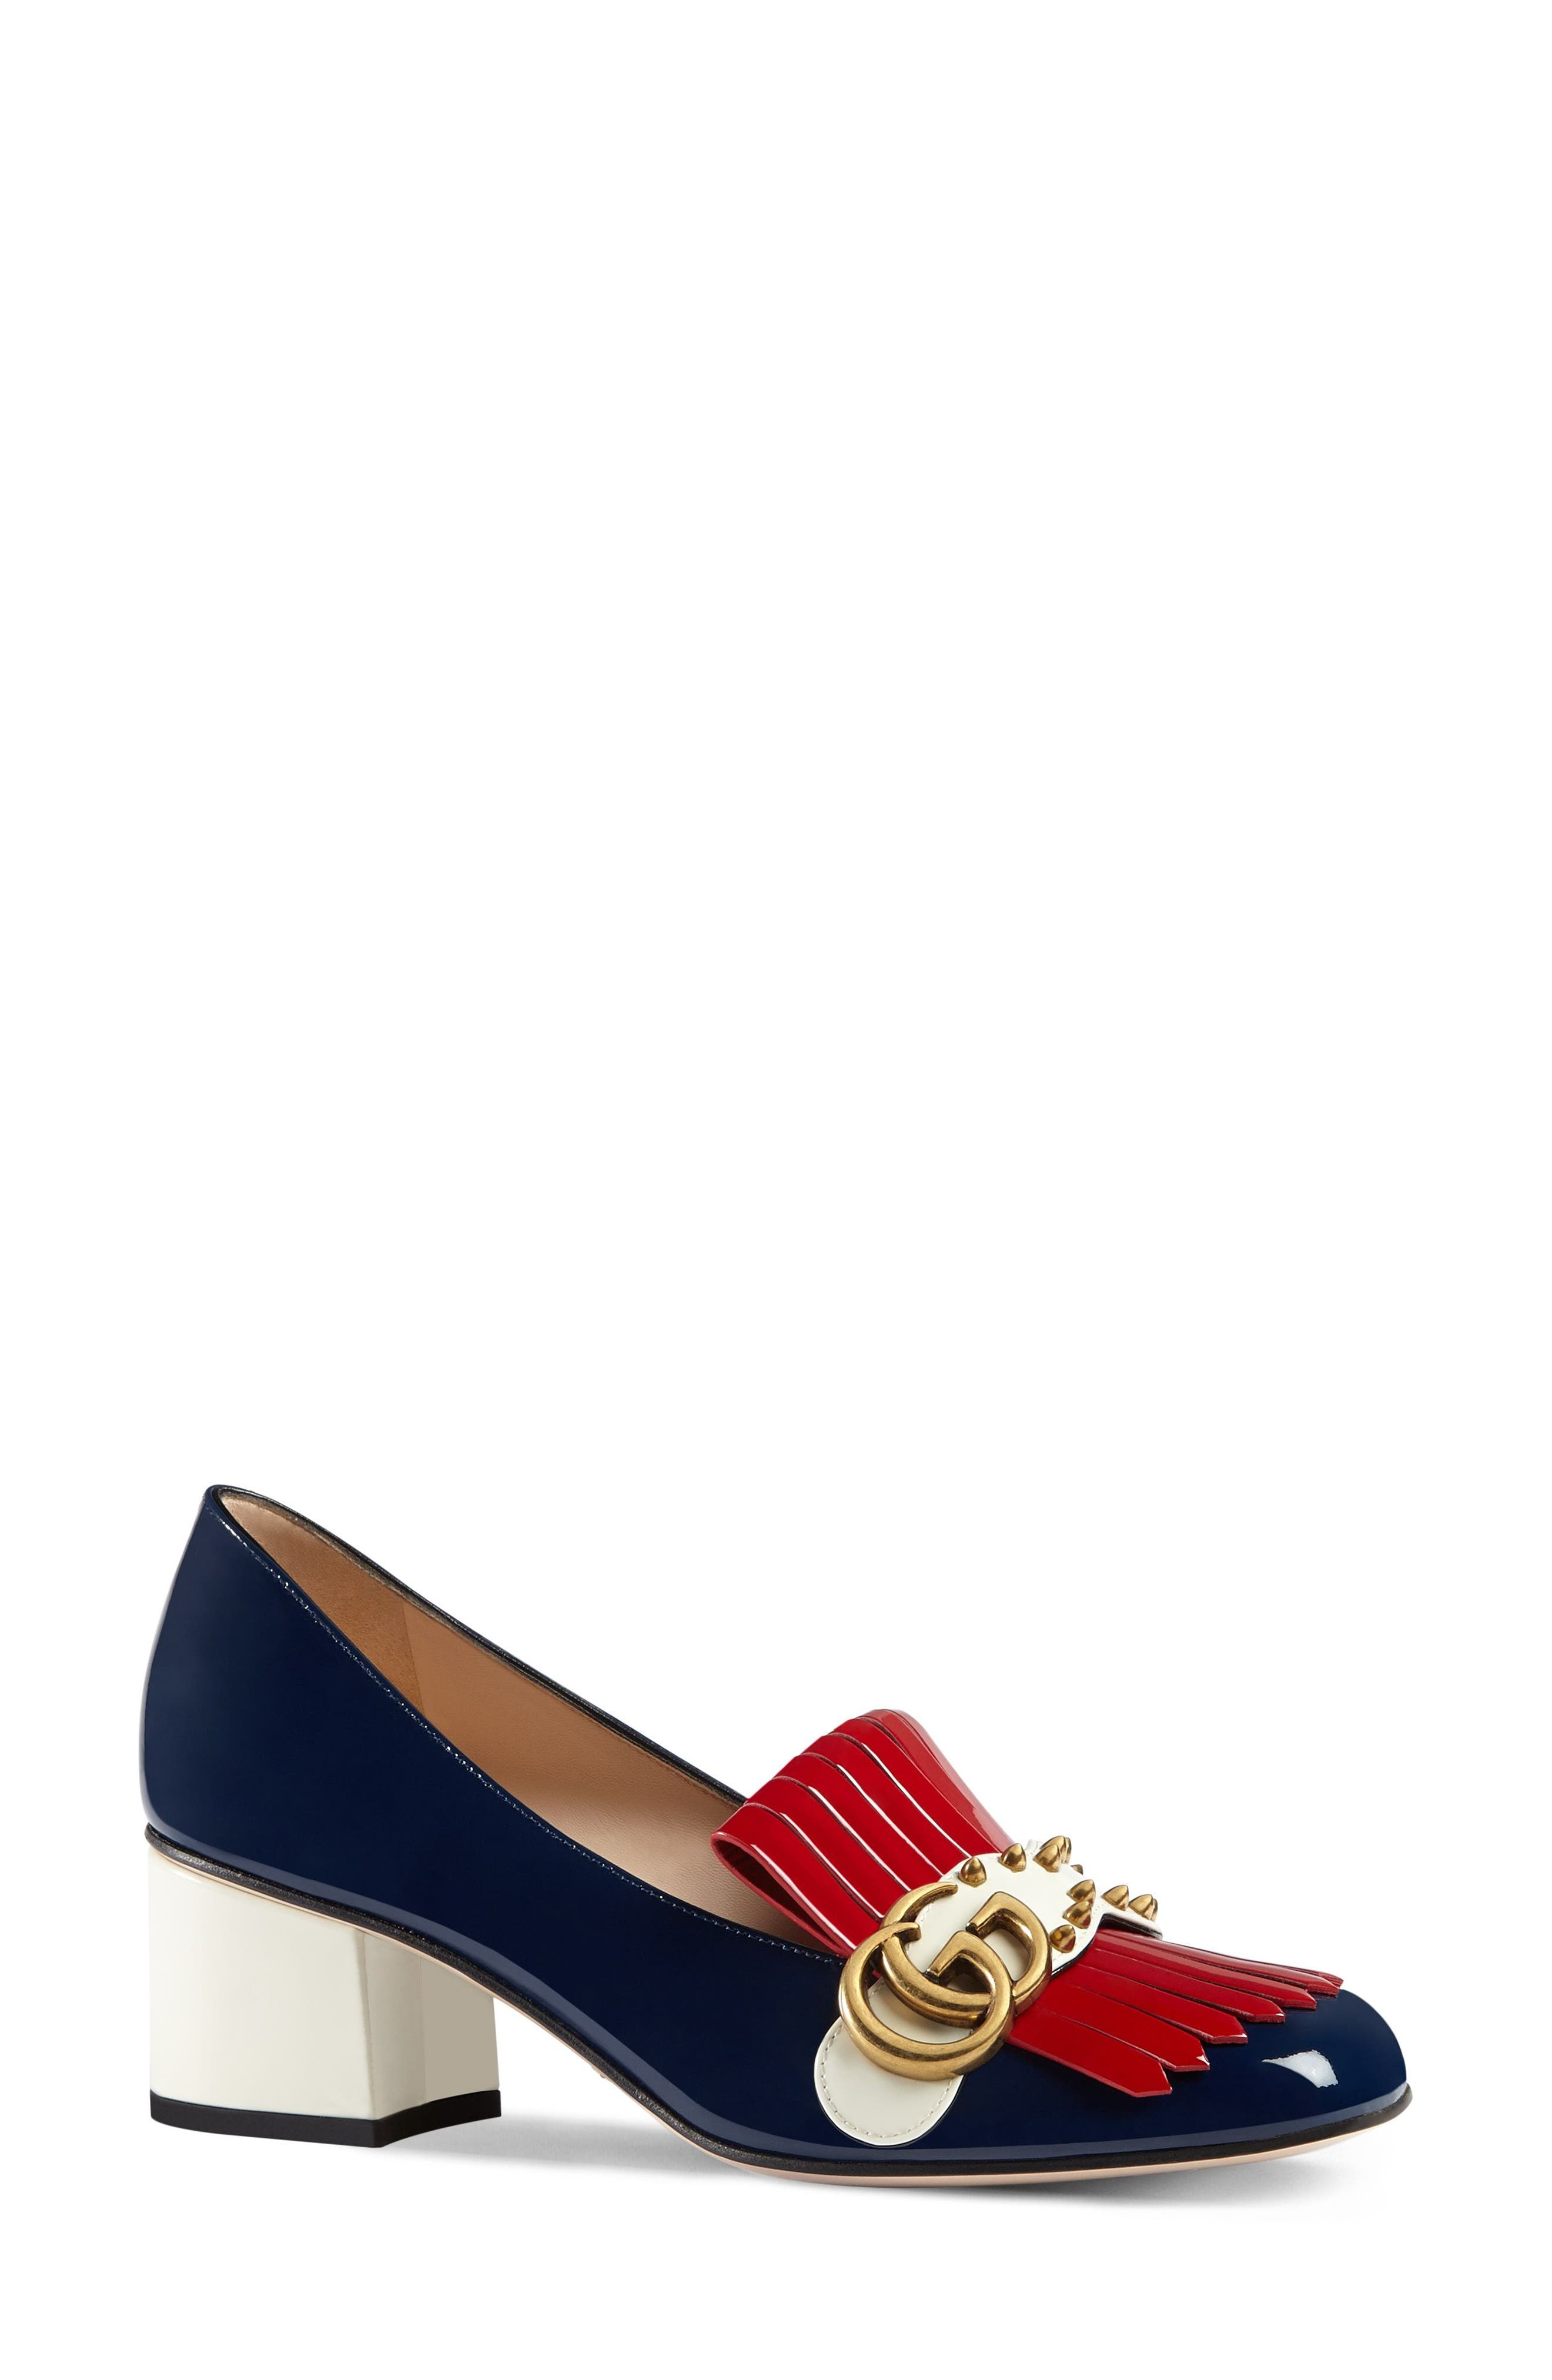 Marmont Pump,                             Alternate thumbnail 2, color,                             Navy/ Red/ White